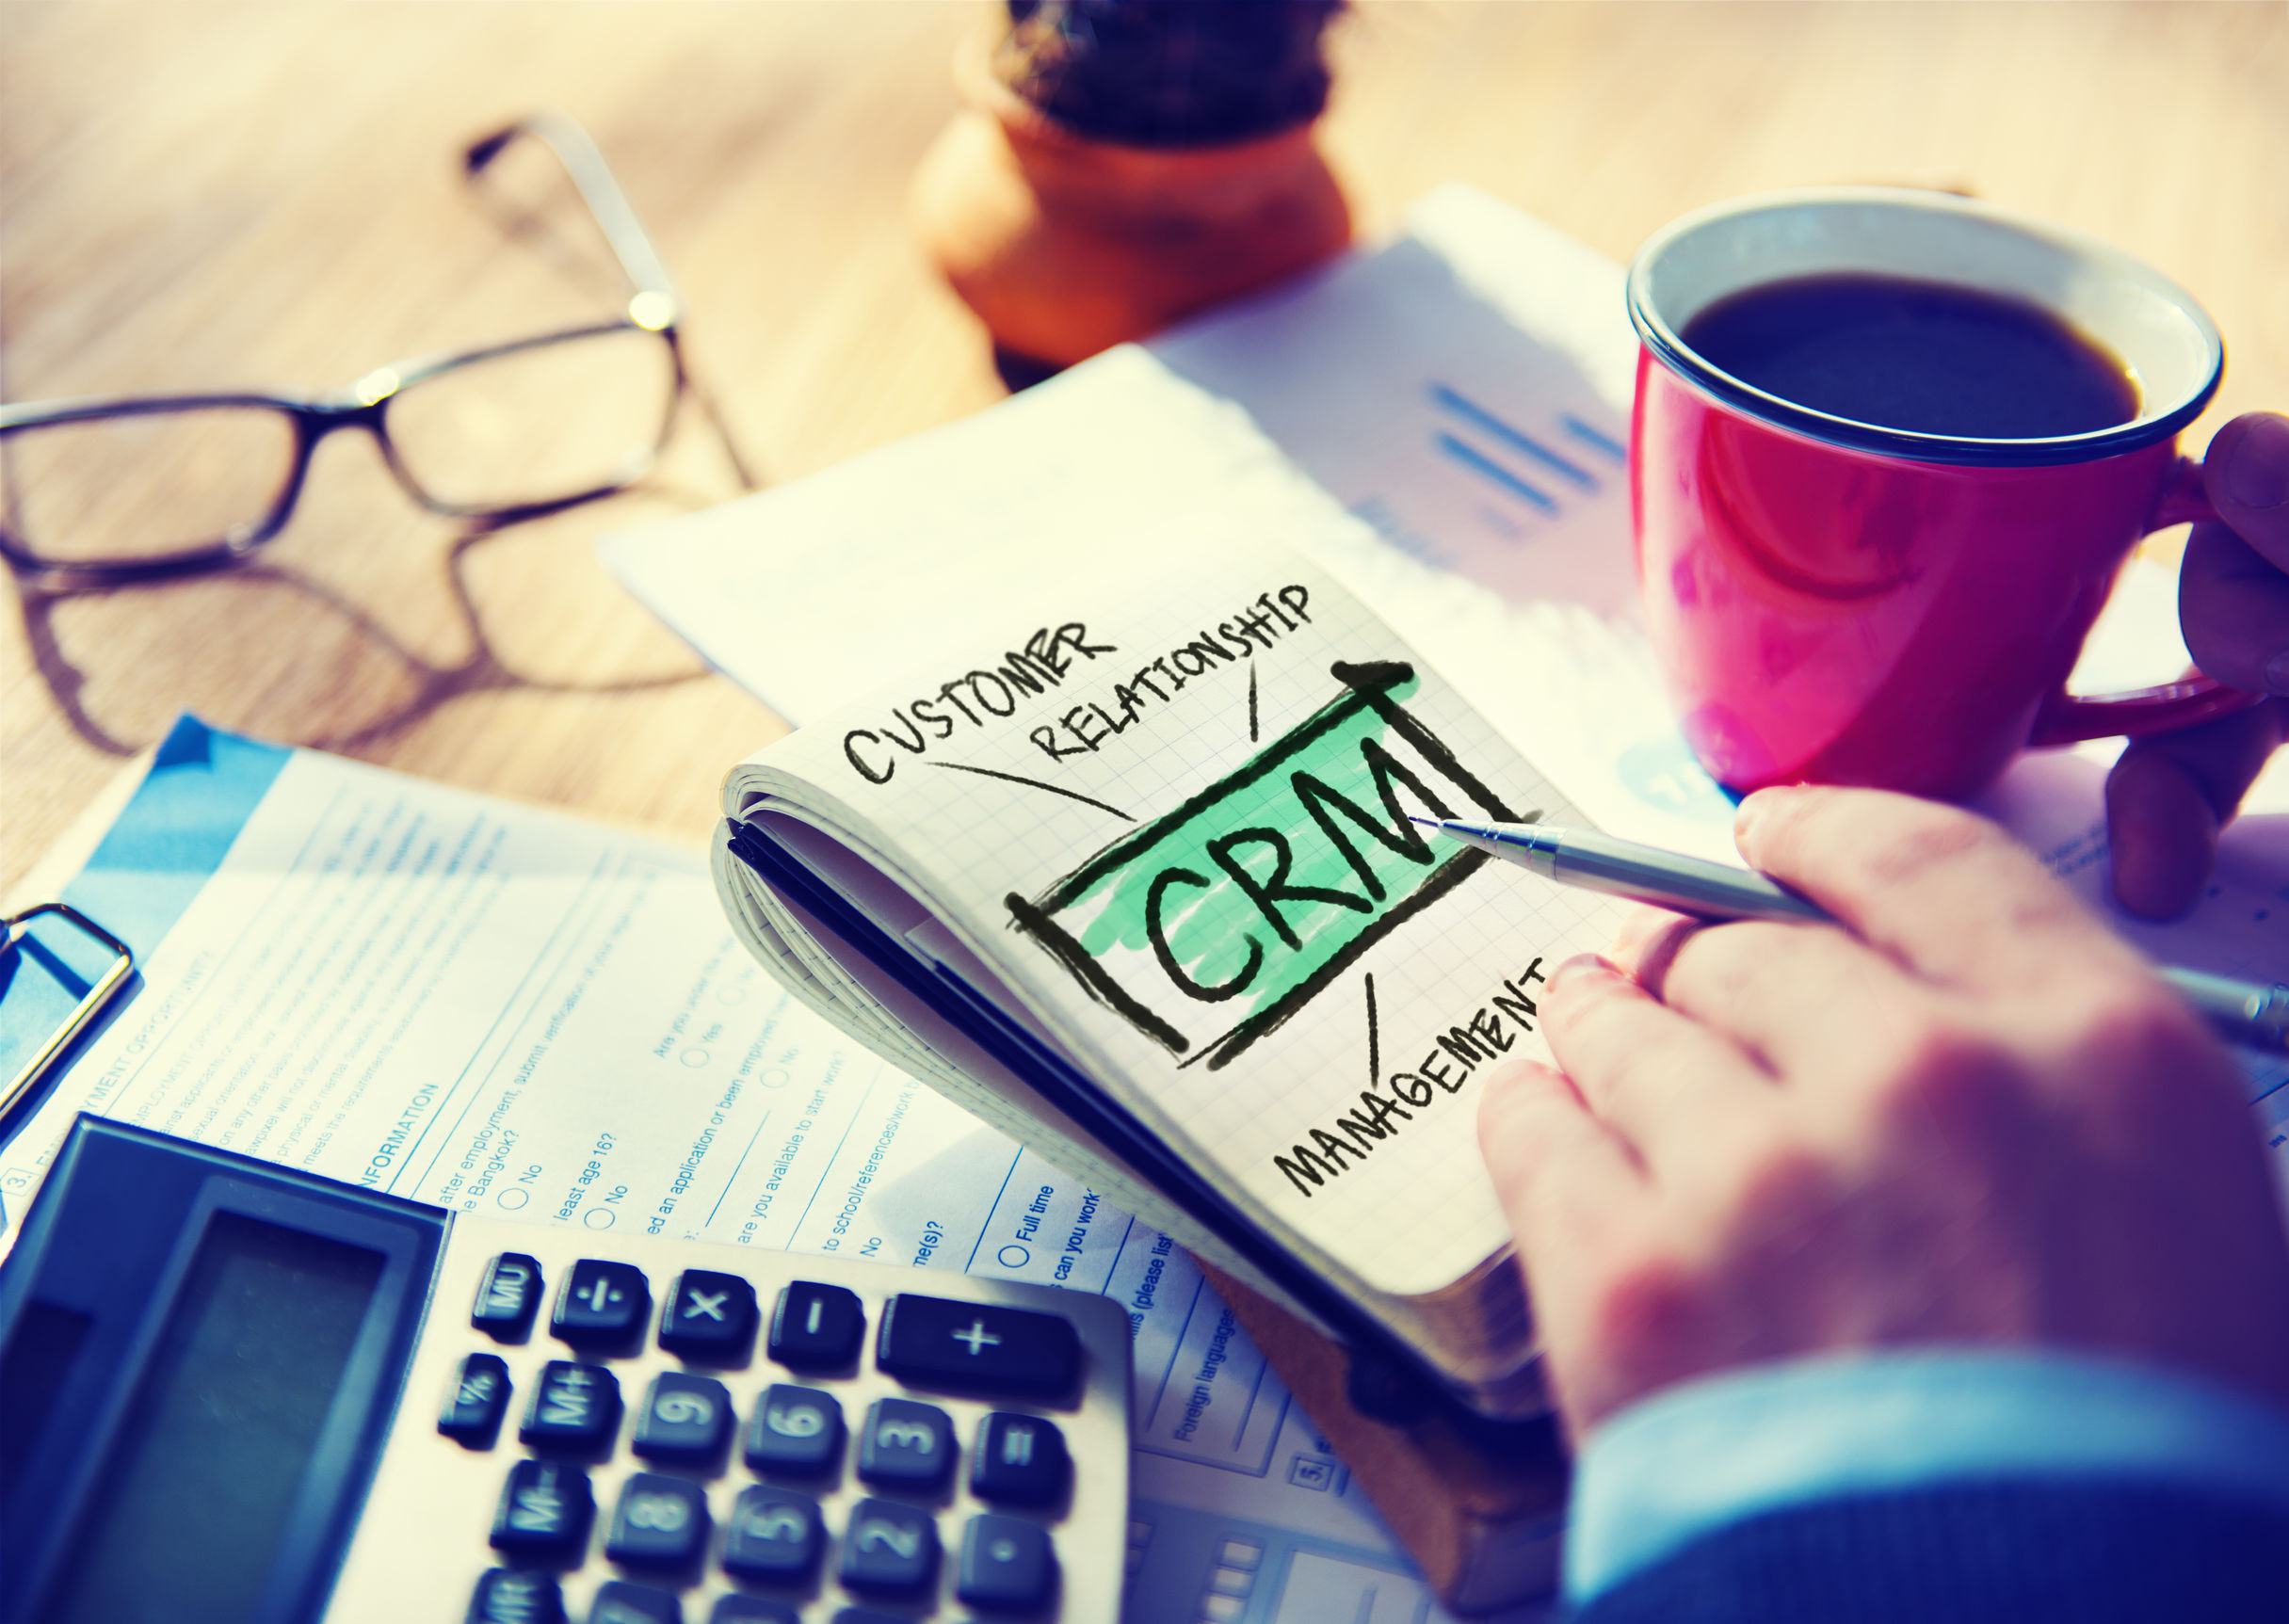 7 Customer Relationship Management (CRM) Trends We're Seeing in 2021